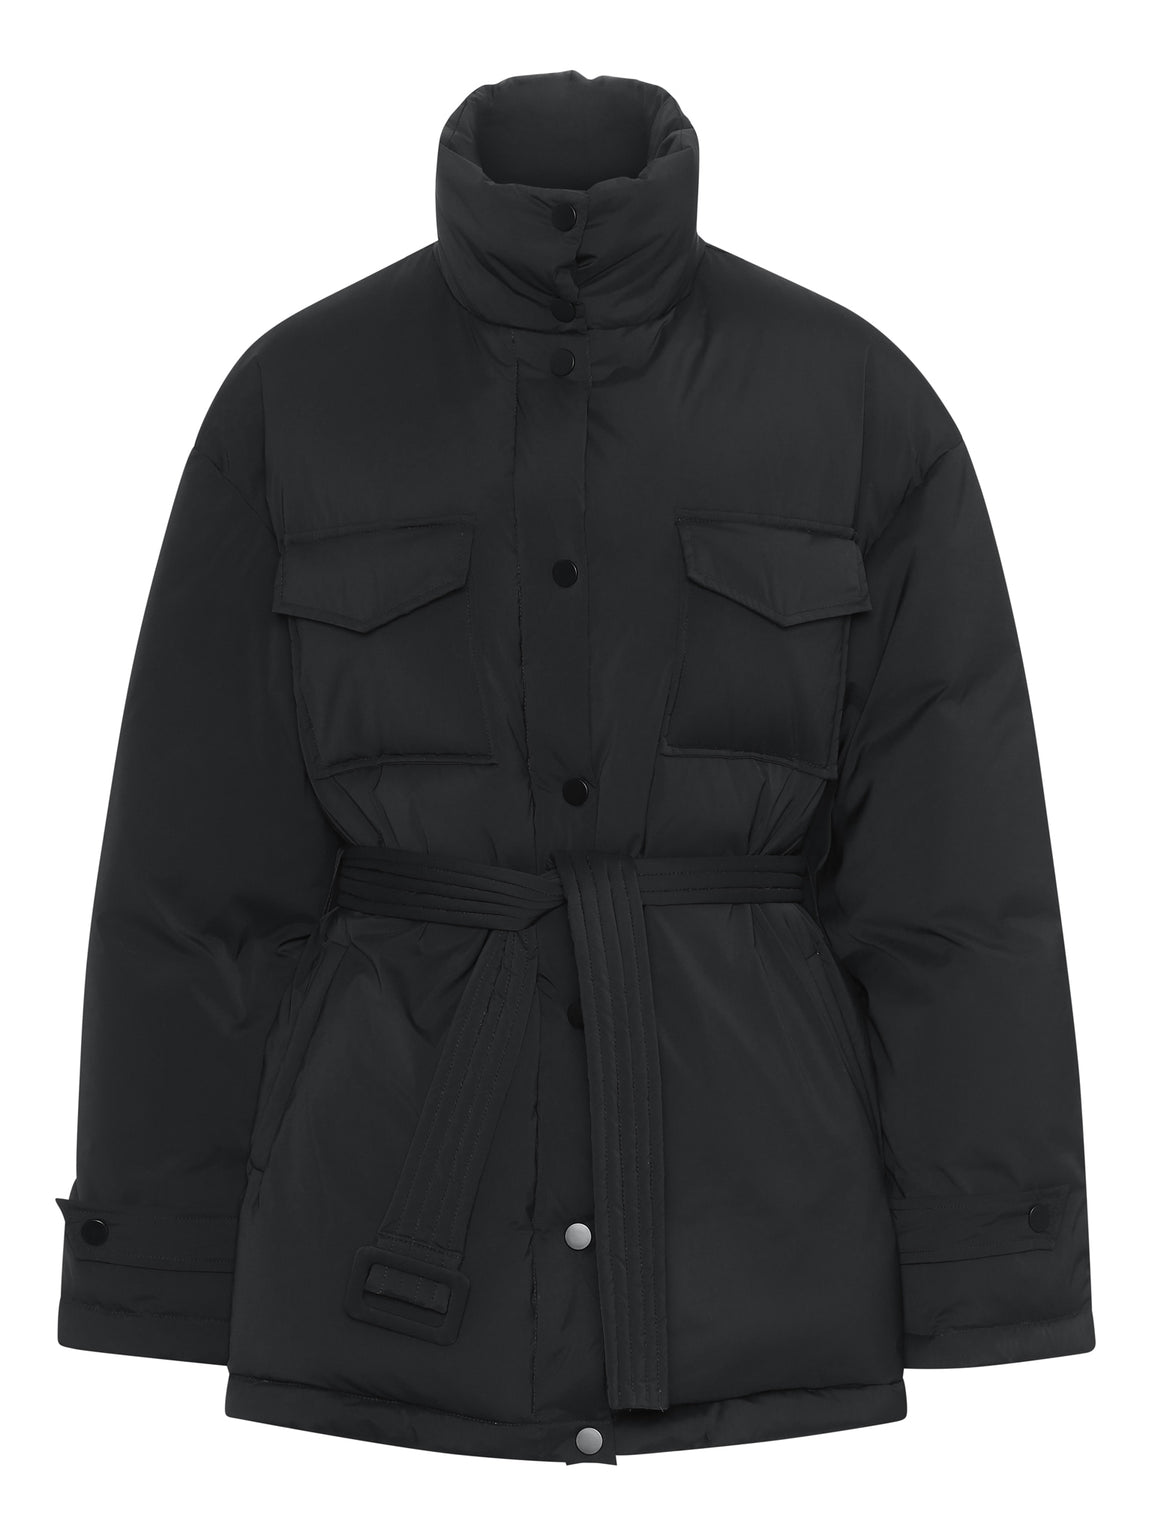 EMMA JACKET - BLACK